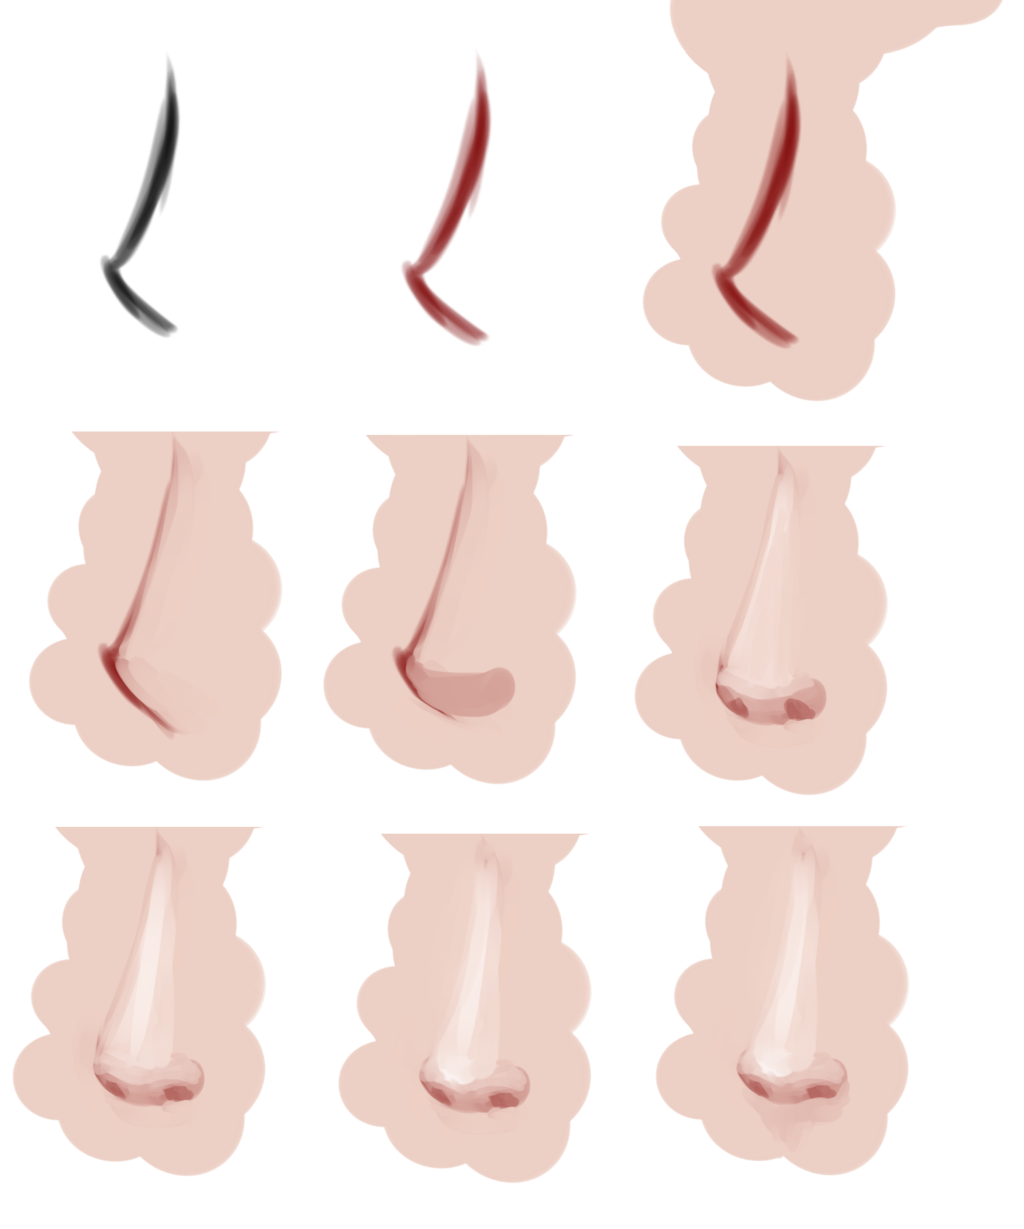 Anime nose png. Drawing at getdrawings com